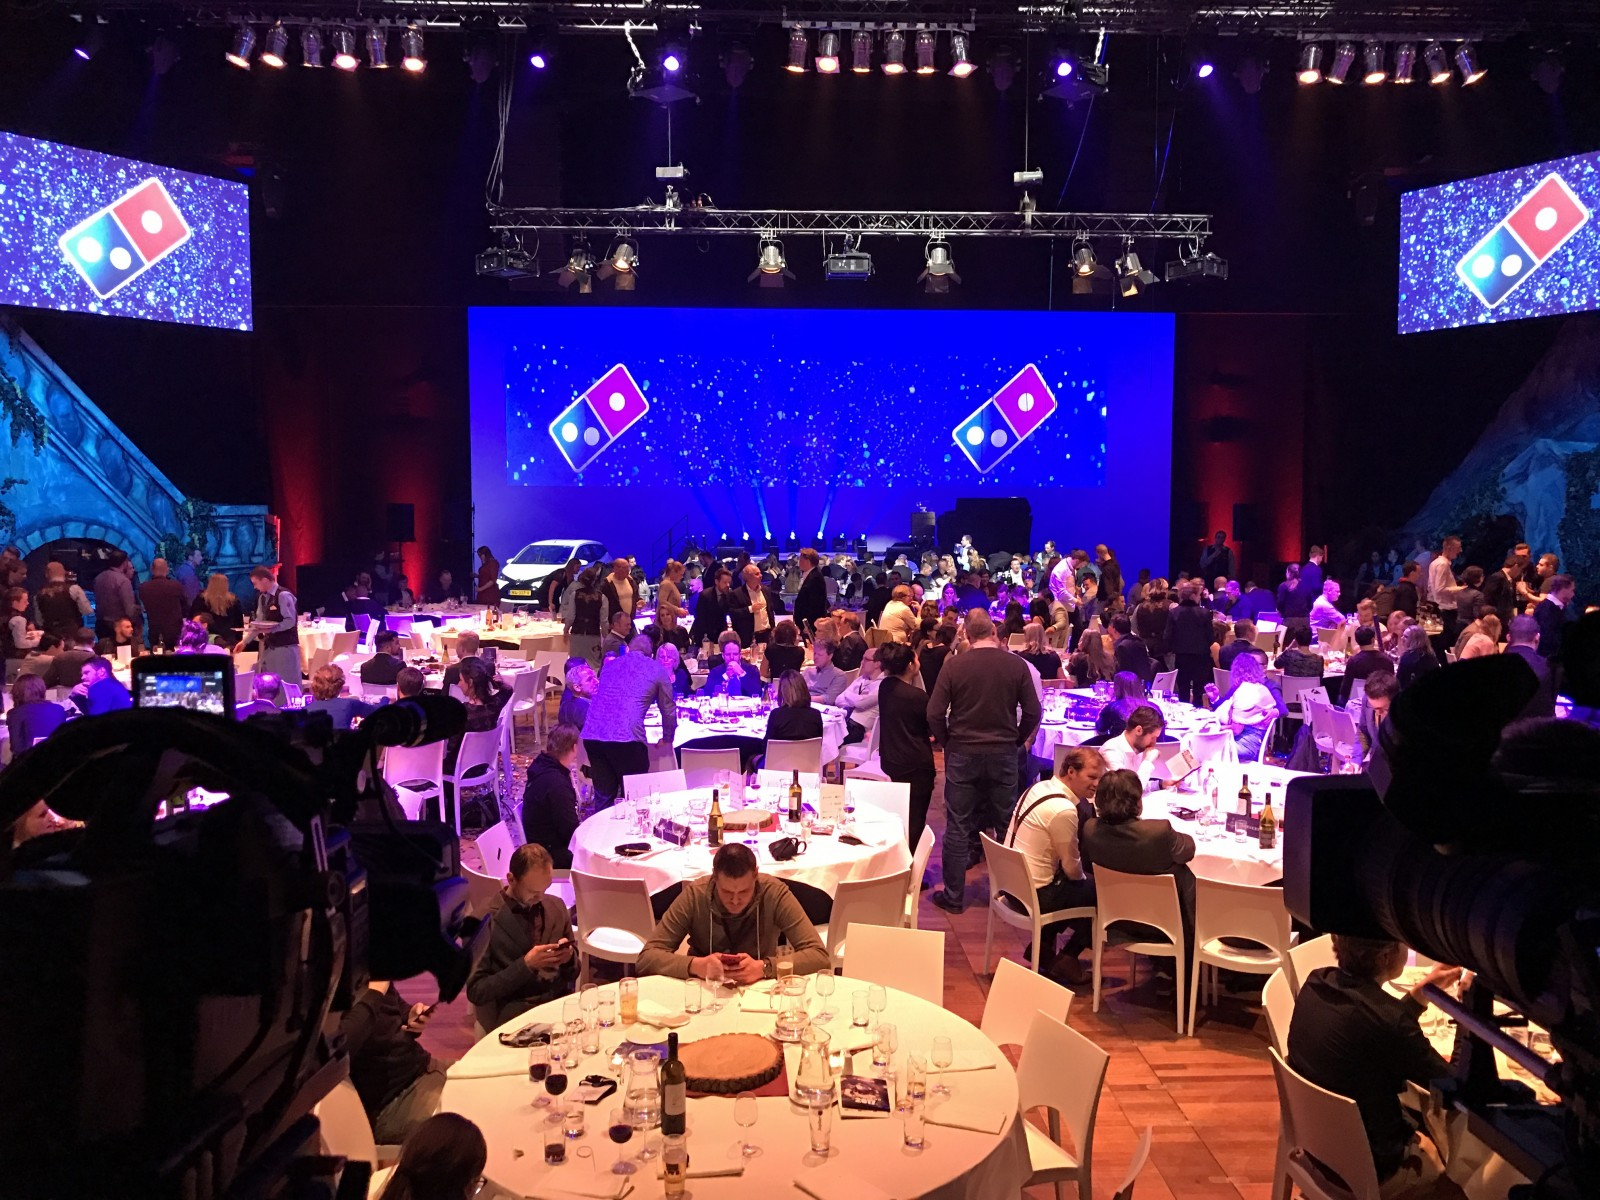 Dominos Awards en pizzabakwedstrijden